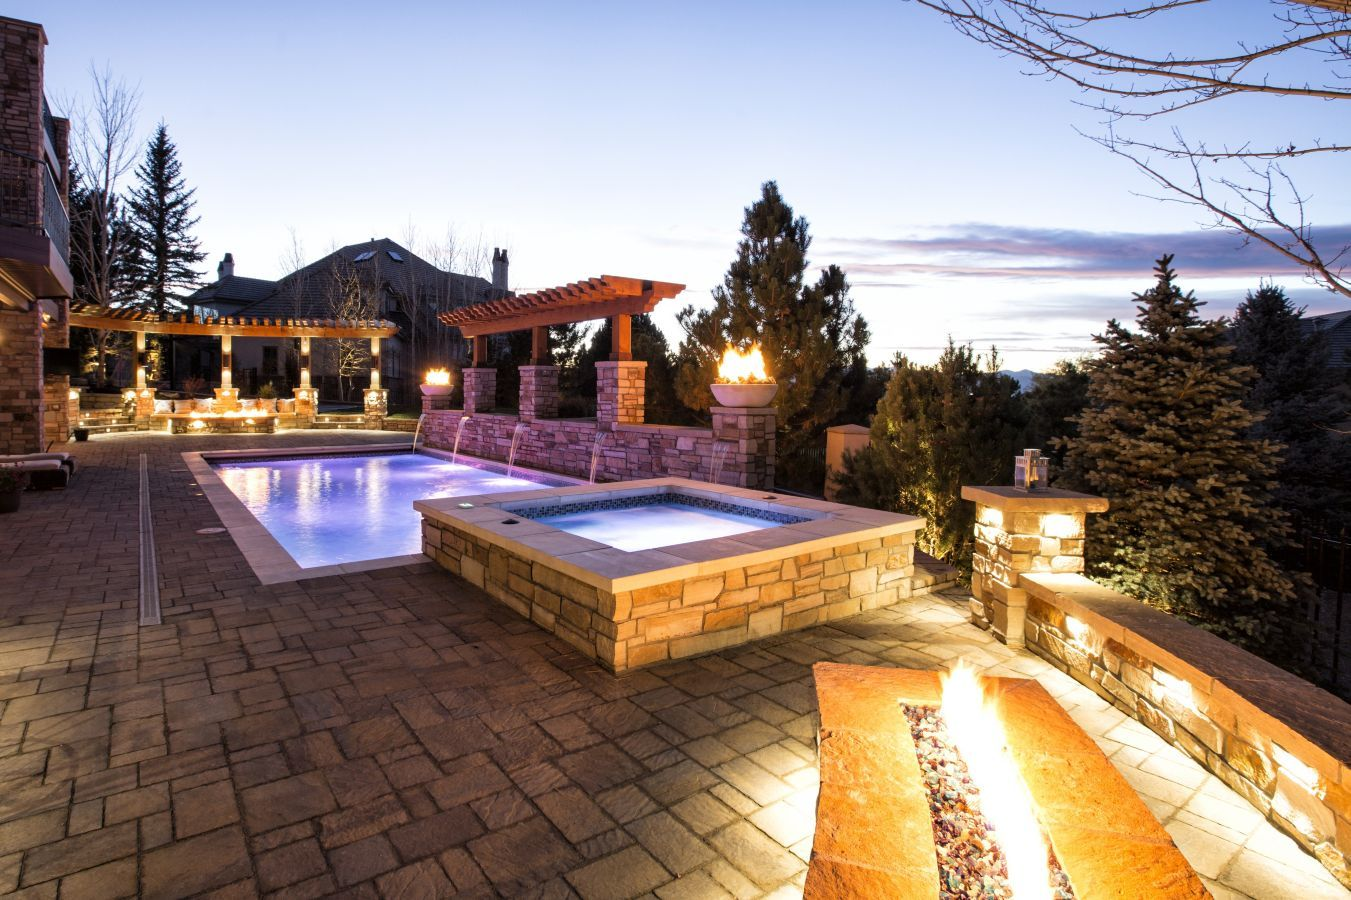 Open Fire Pits Stone Flooring And A Colorfully Lit Pool By Dream Makers Overlook The Rocky Mountains In This Hom Beautiful Pools Outdoor Design Pool Builders